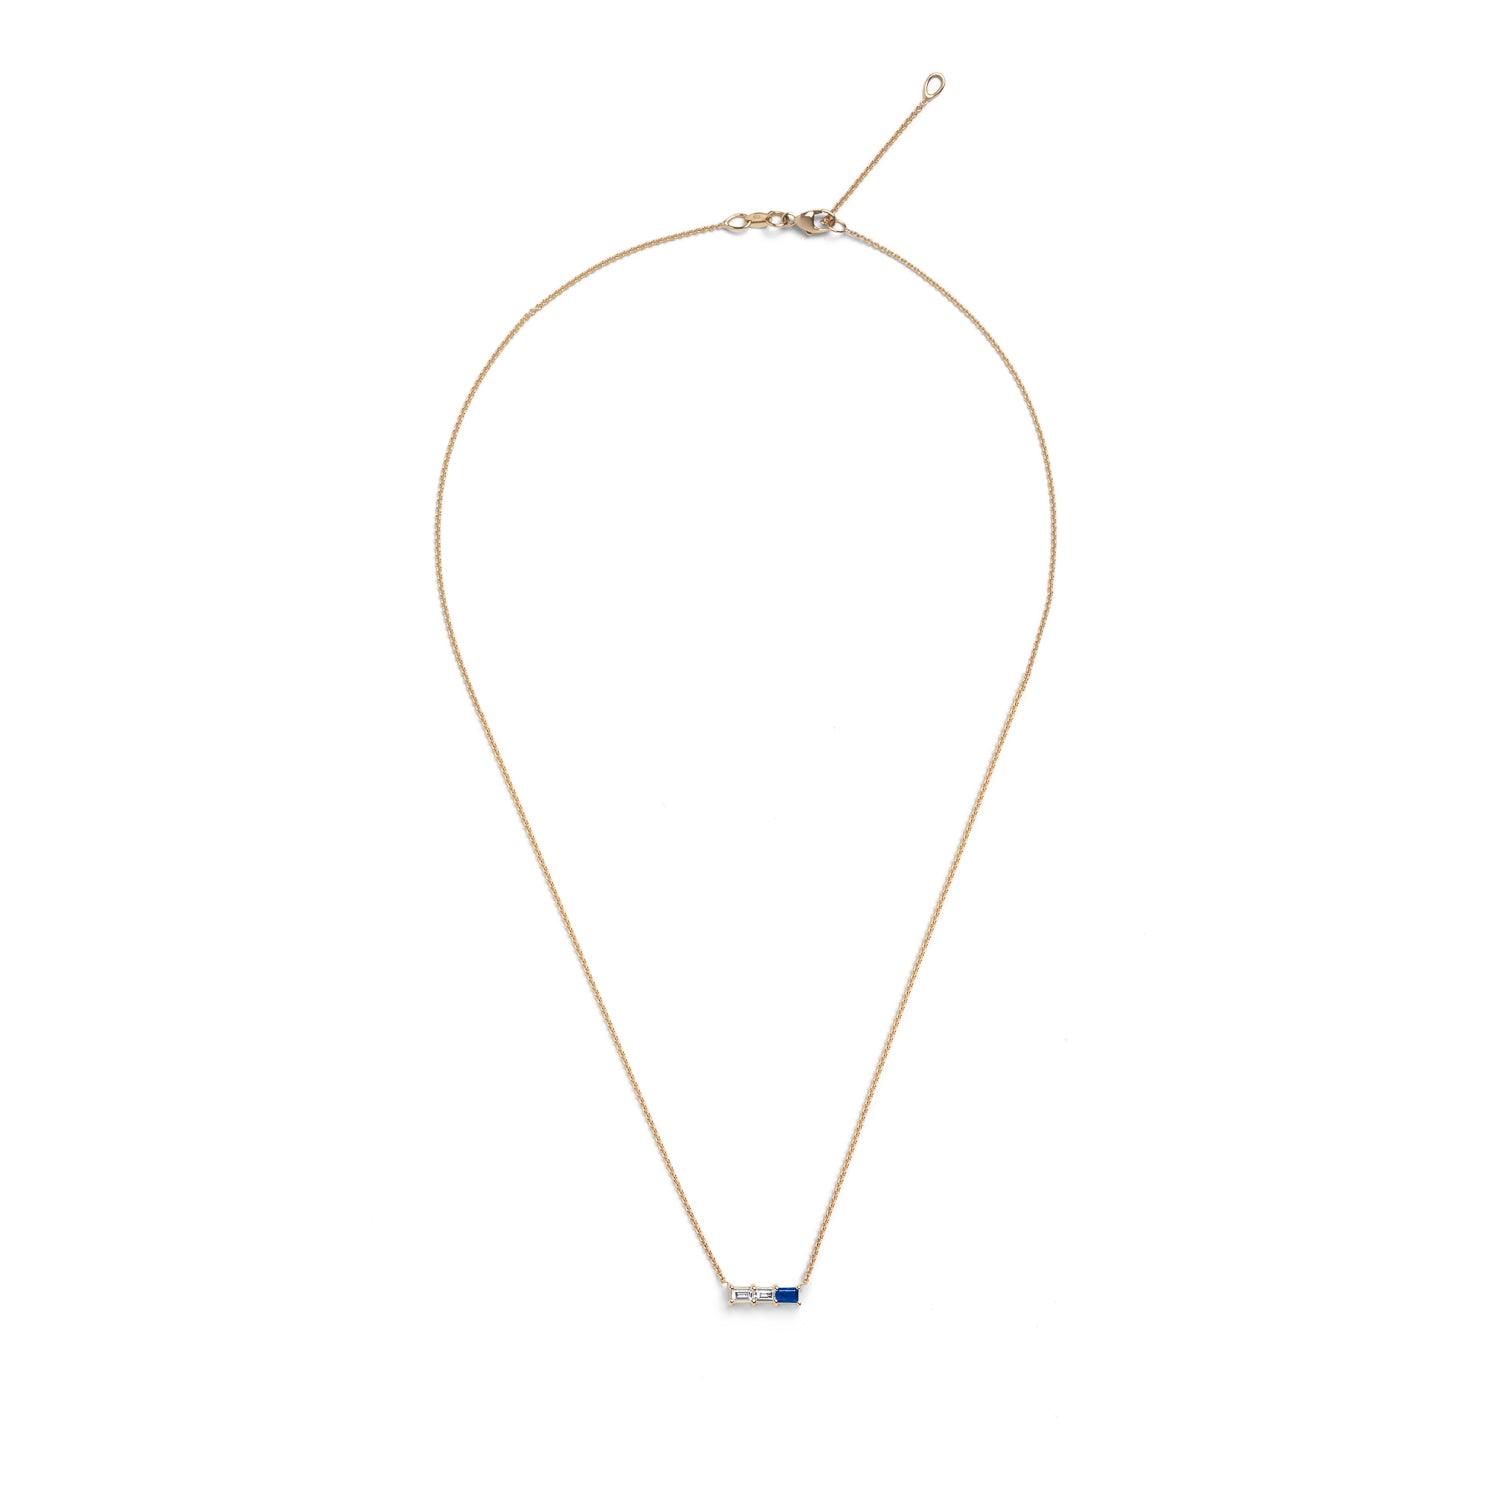 Selin Kent 14K Rhea Necklace with Two White Diamond Baguettes and One Sapphire Baguette